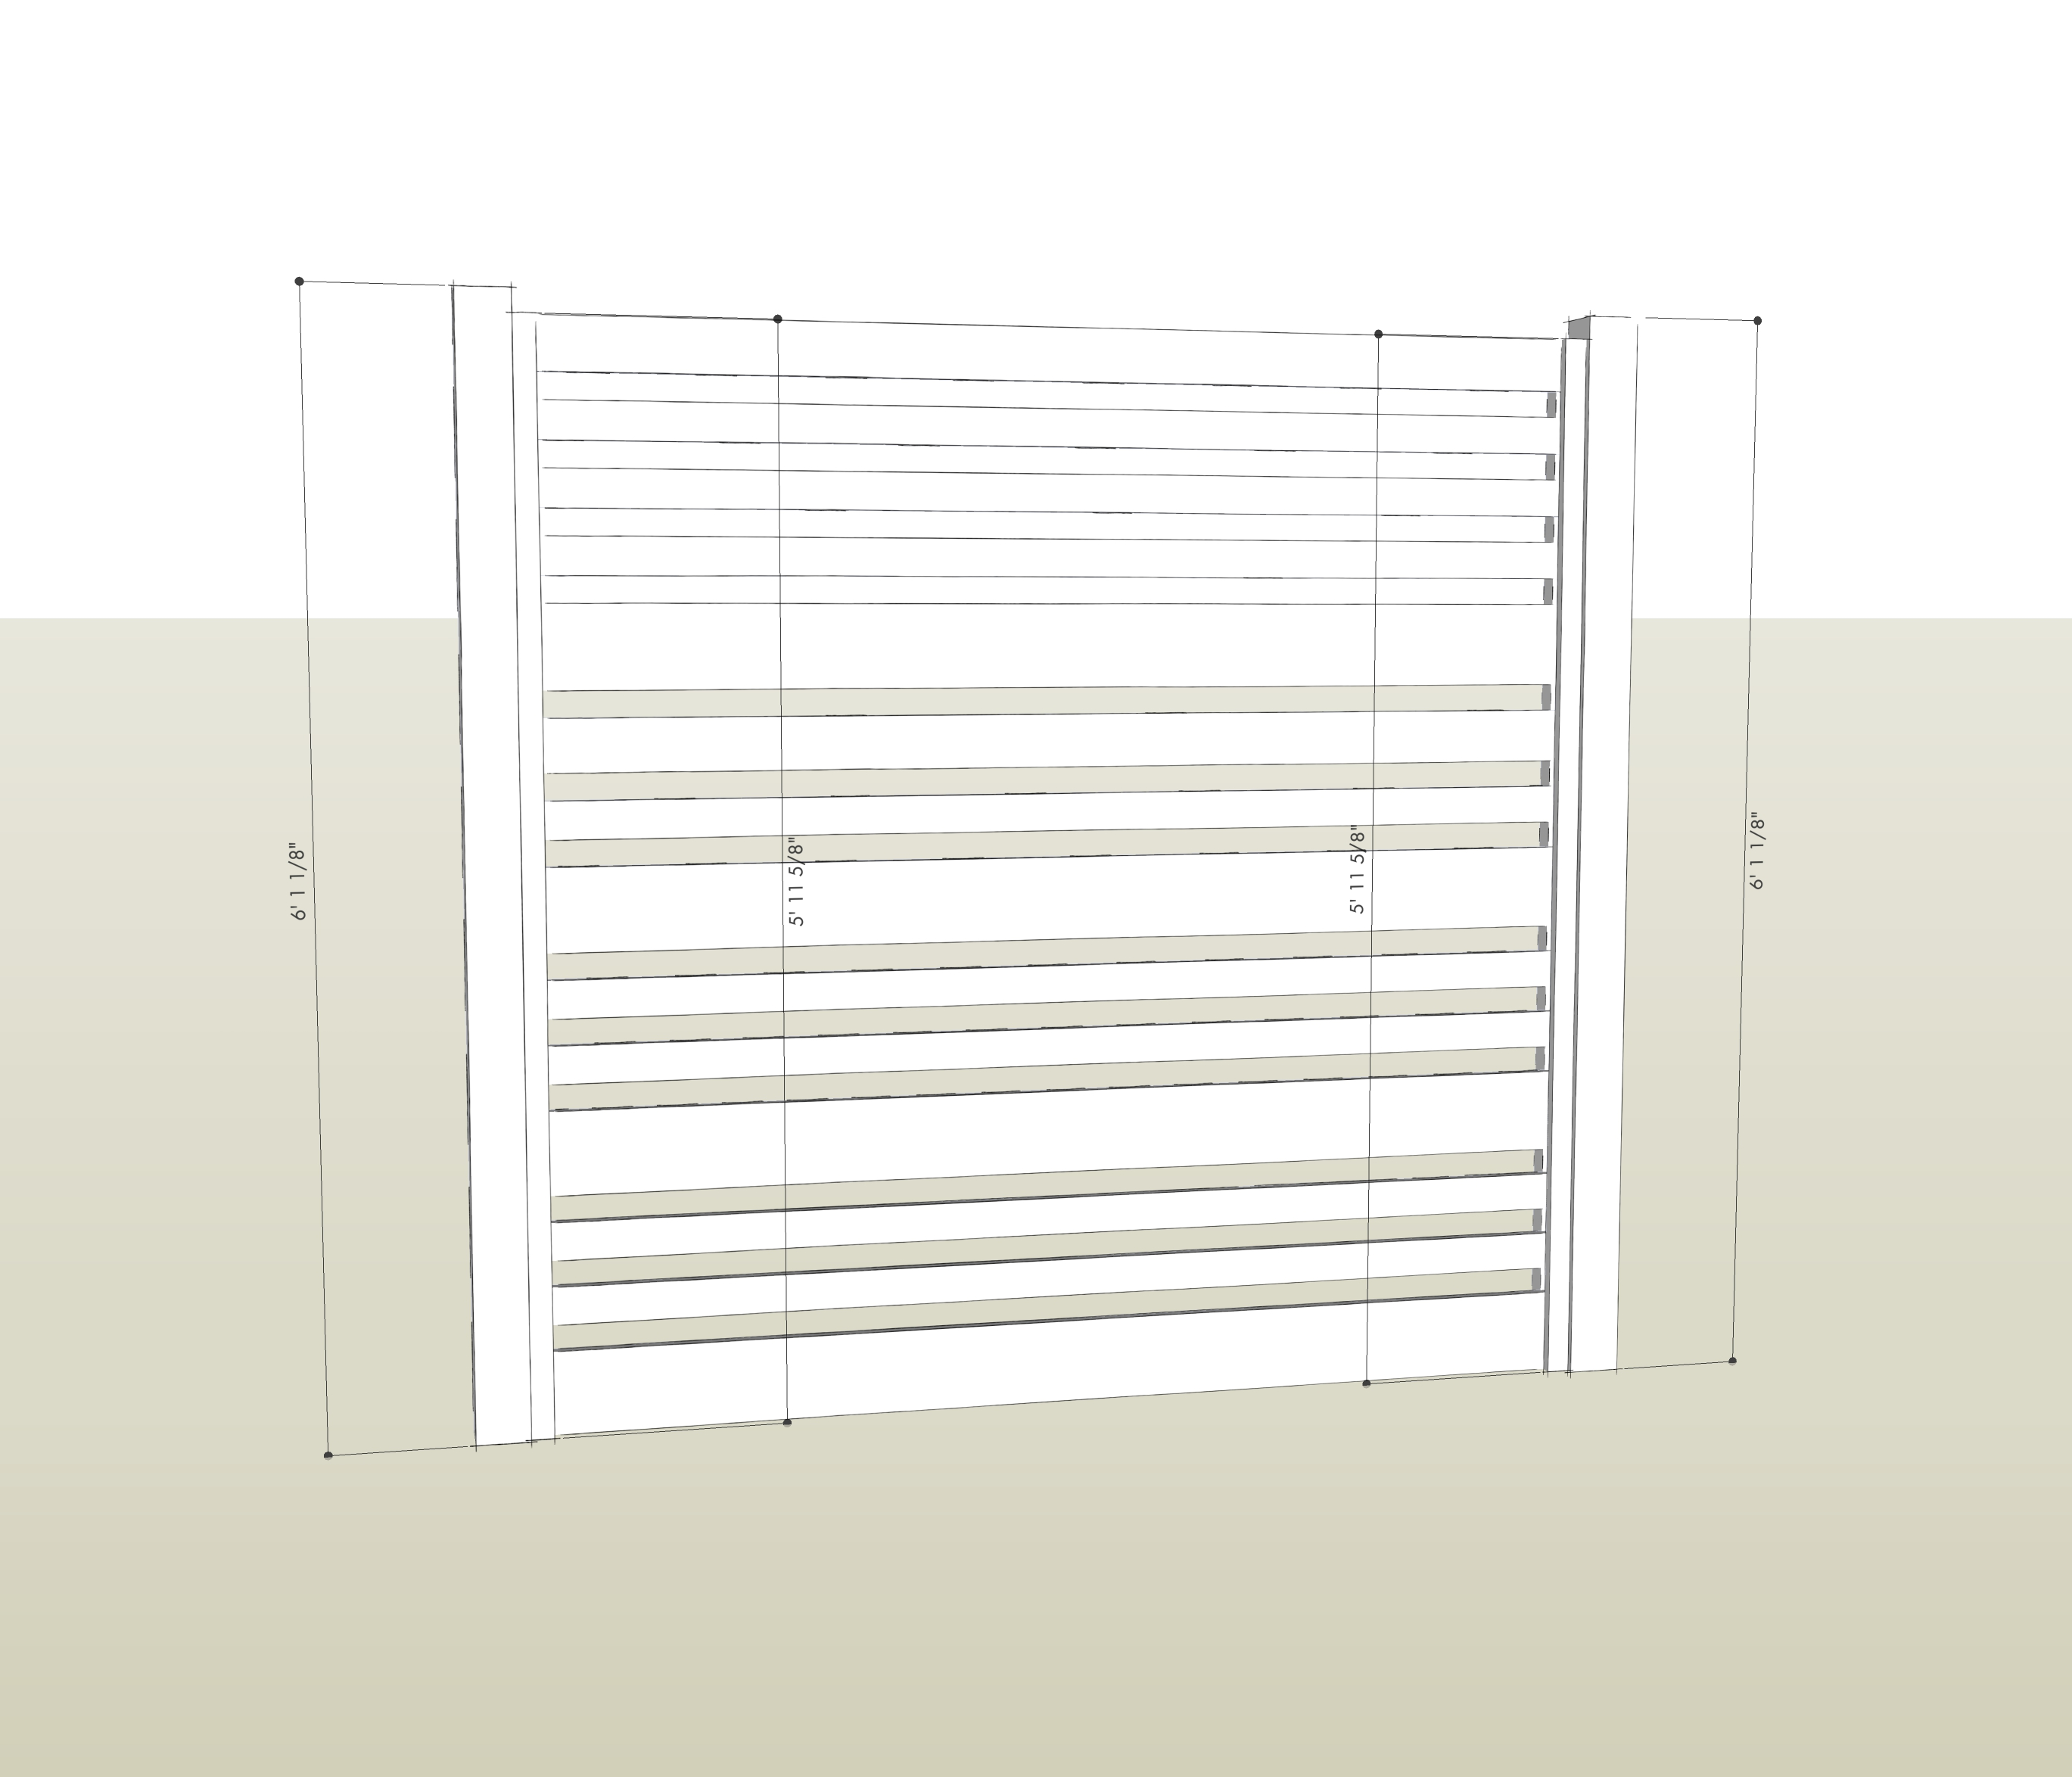 Horizontal Fence with Plans and Dimensions | Deuce Cities Henhouse